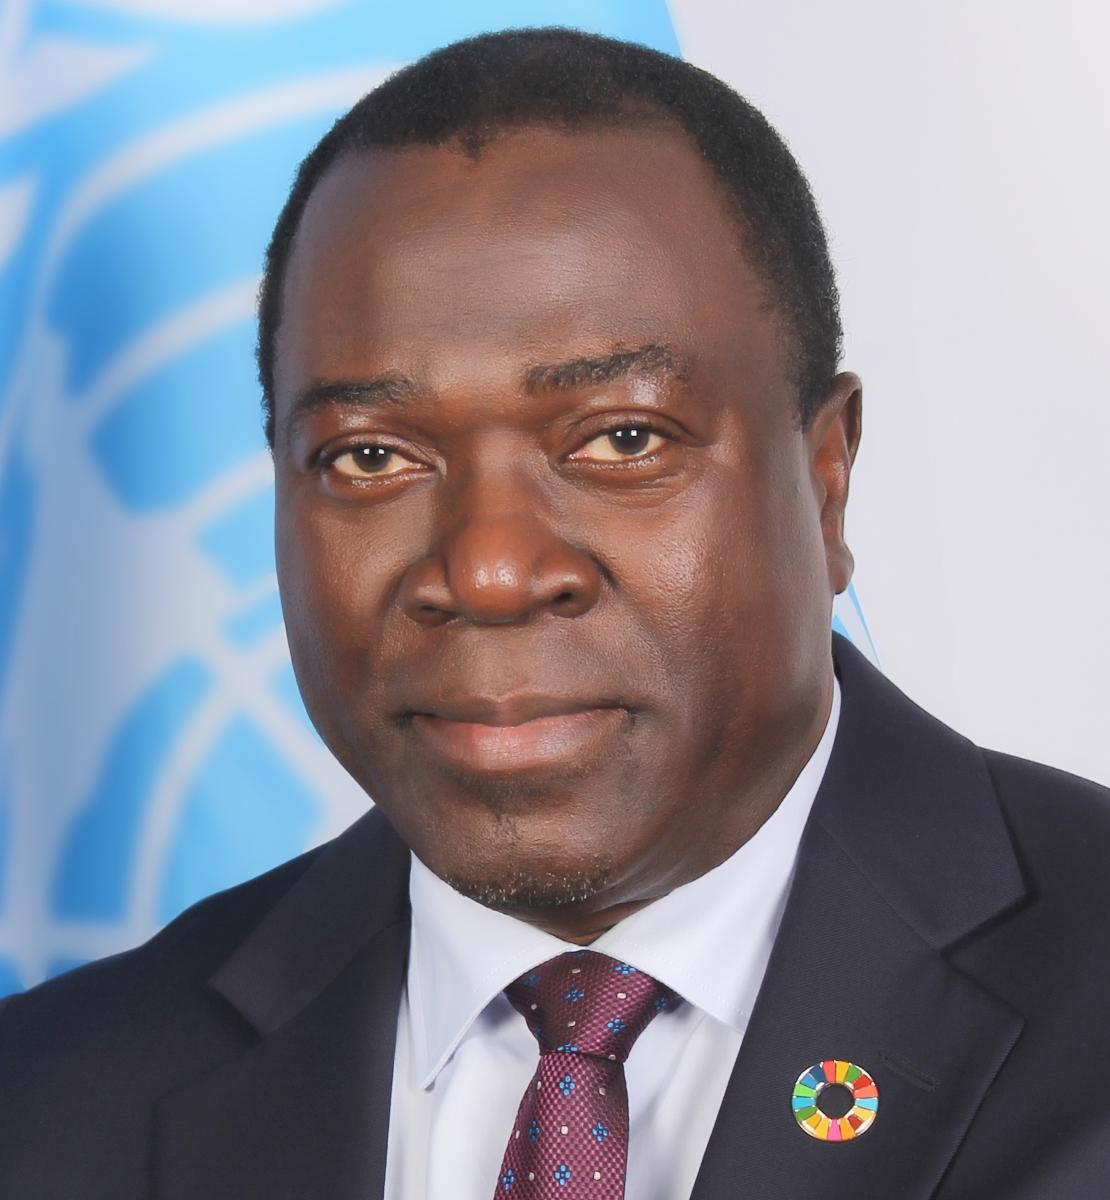 Official photo of the new appointed Resident Coordinator for Sierra Leone, Babatunde Ahonsi.